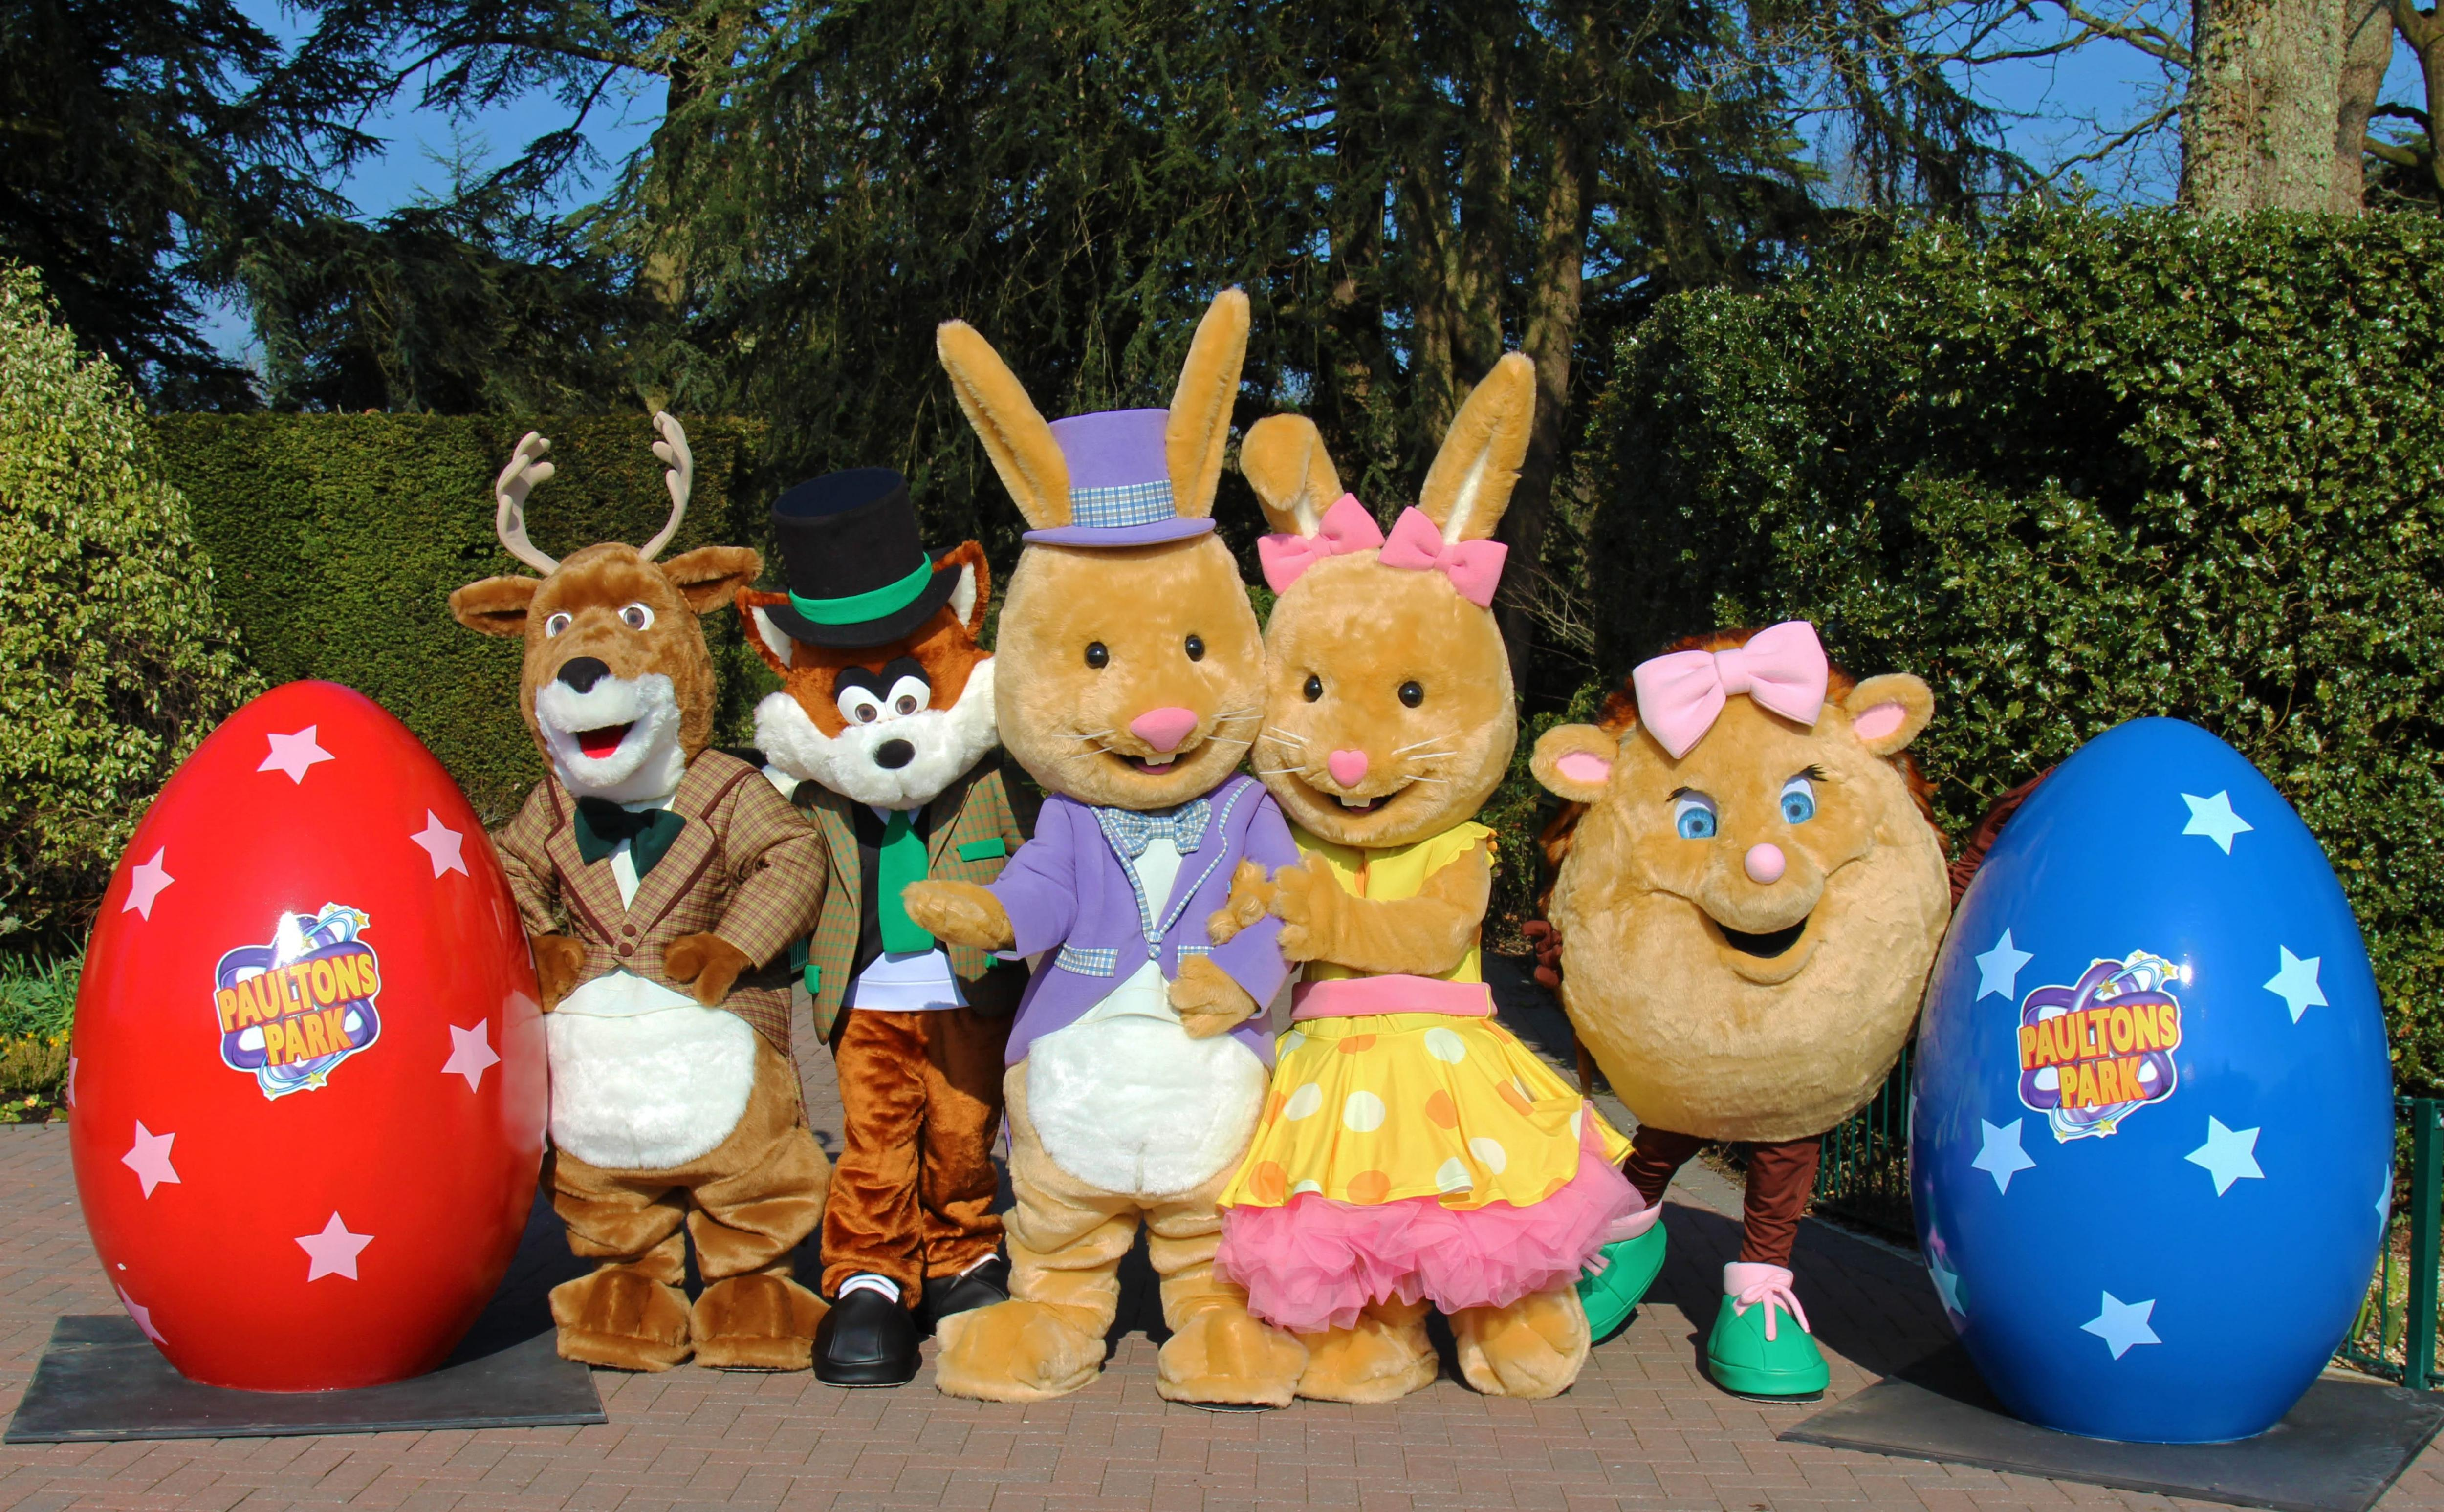 IF YOU'RE HOP-ING FOR FAMILY FUN THIS EASTER, PAULTONS PARK IS THE PLACE TO BE!